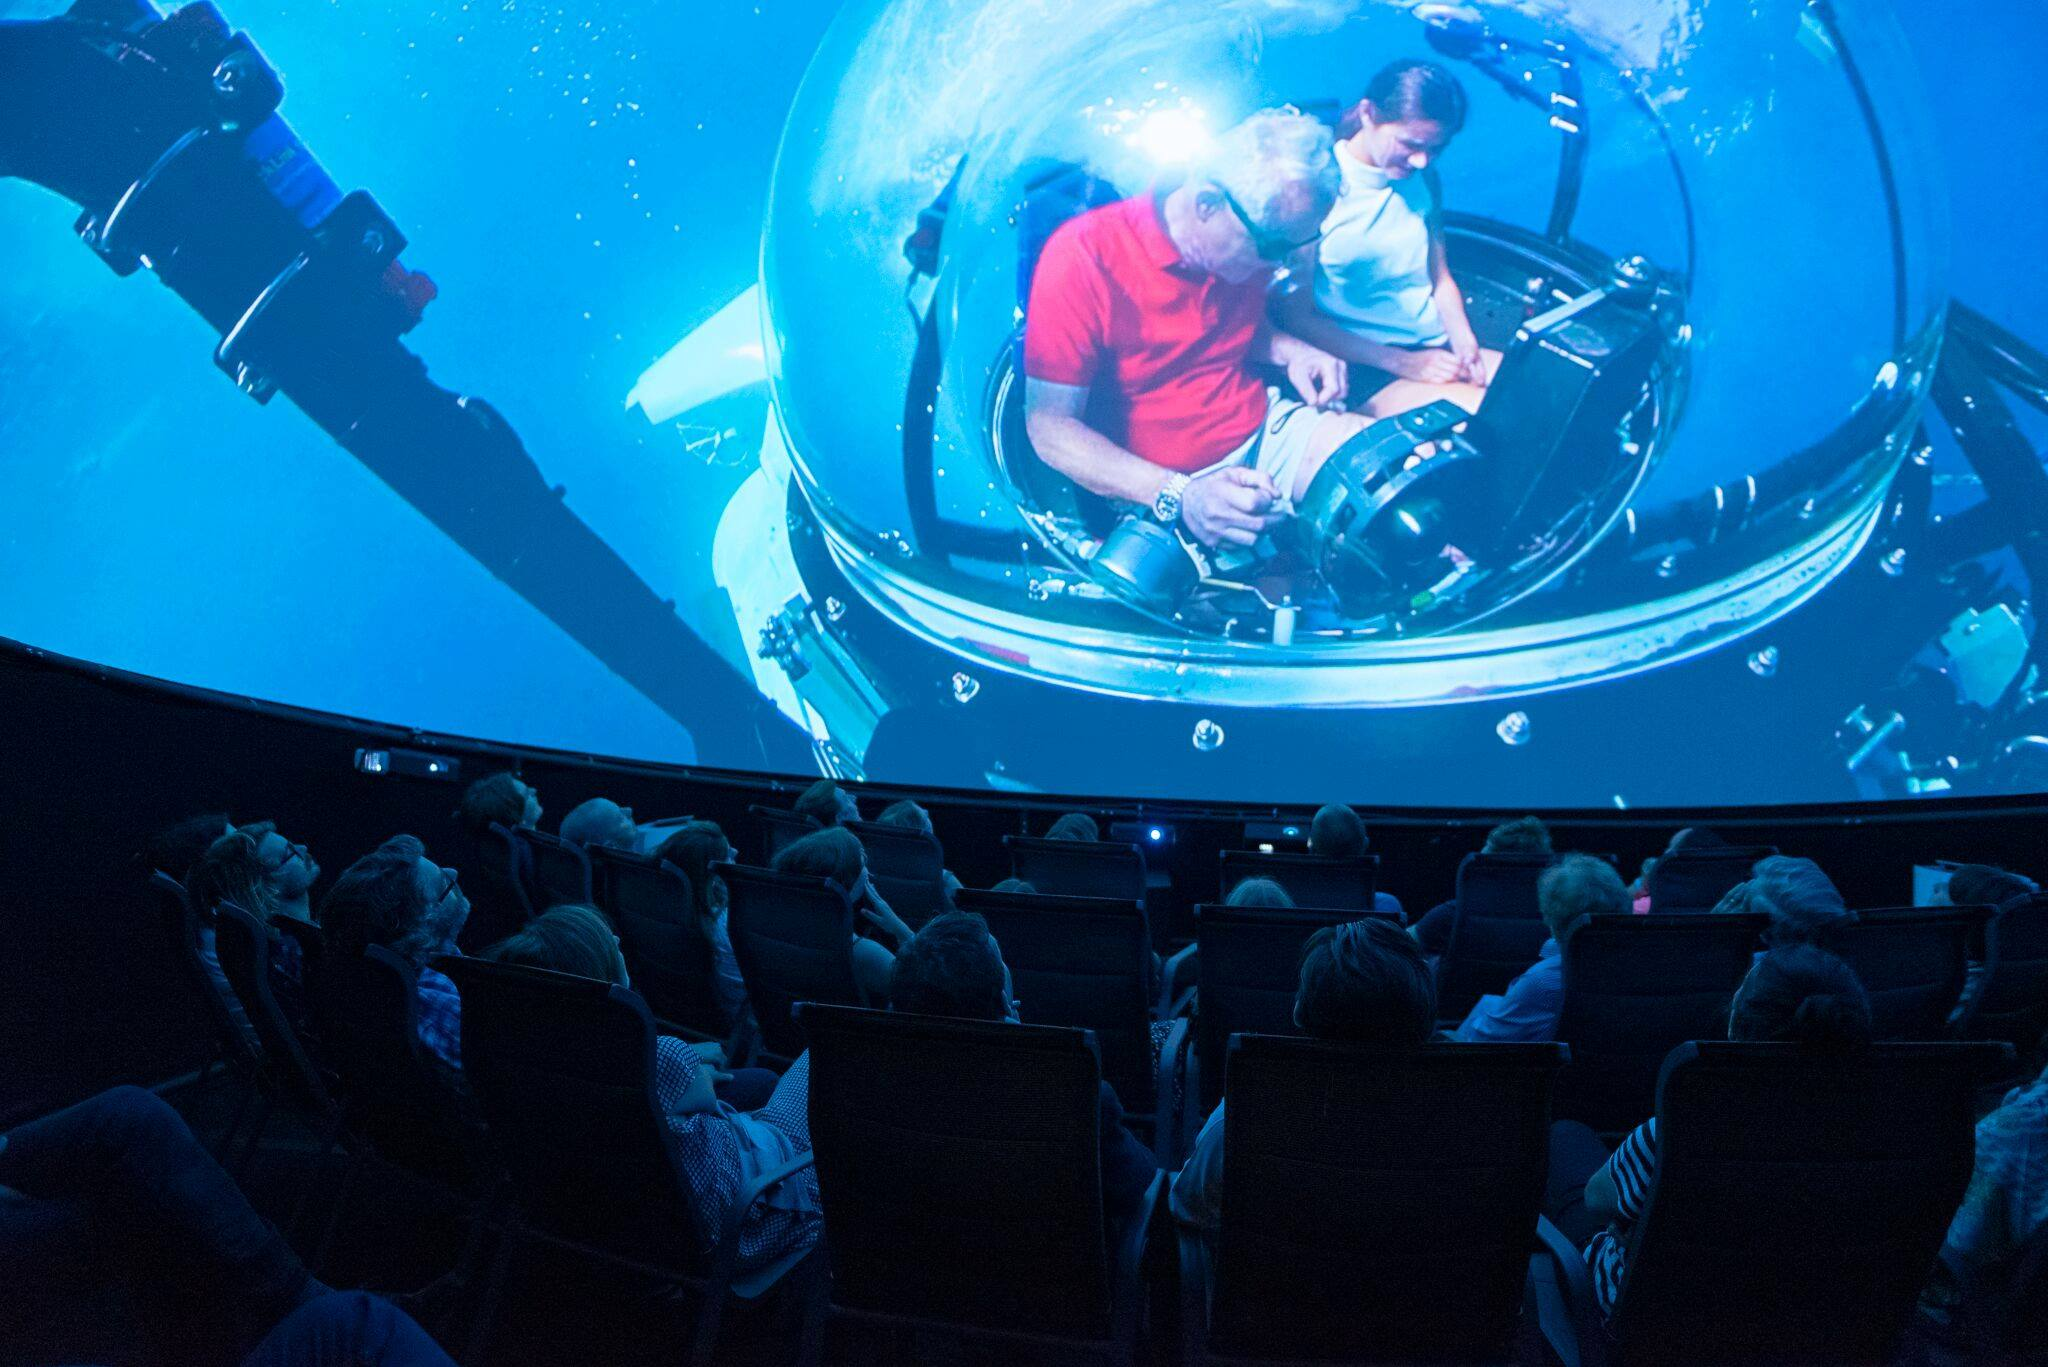 Prospero Productions chooses Screenberry to present its 360° underwater show